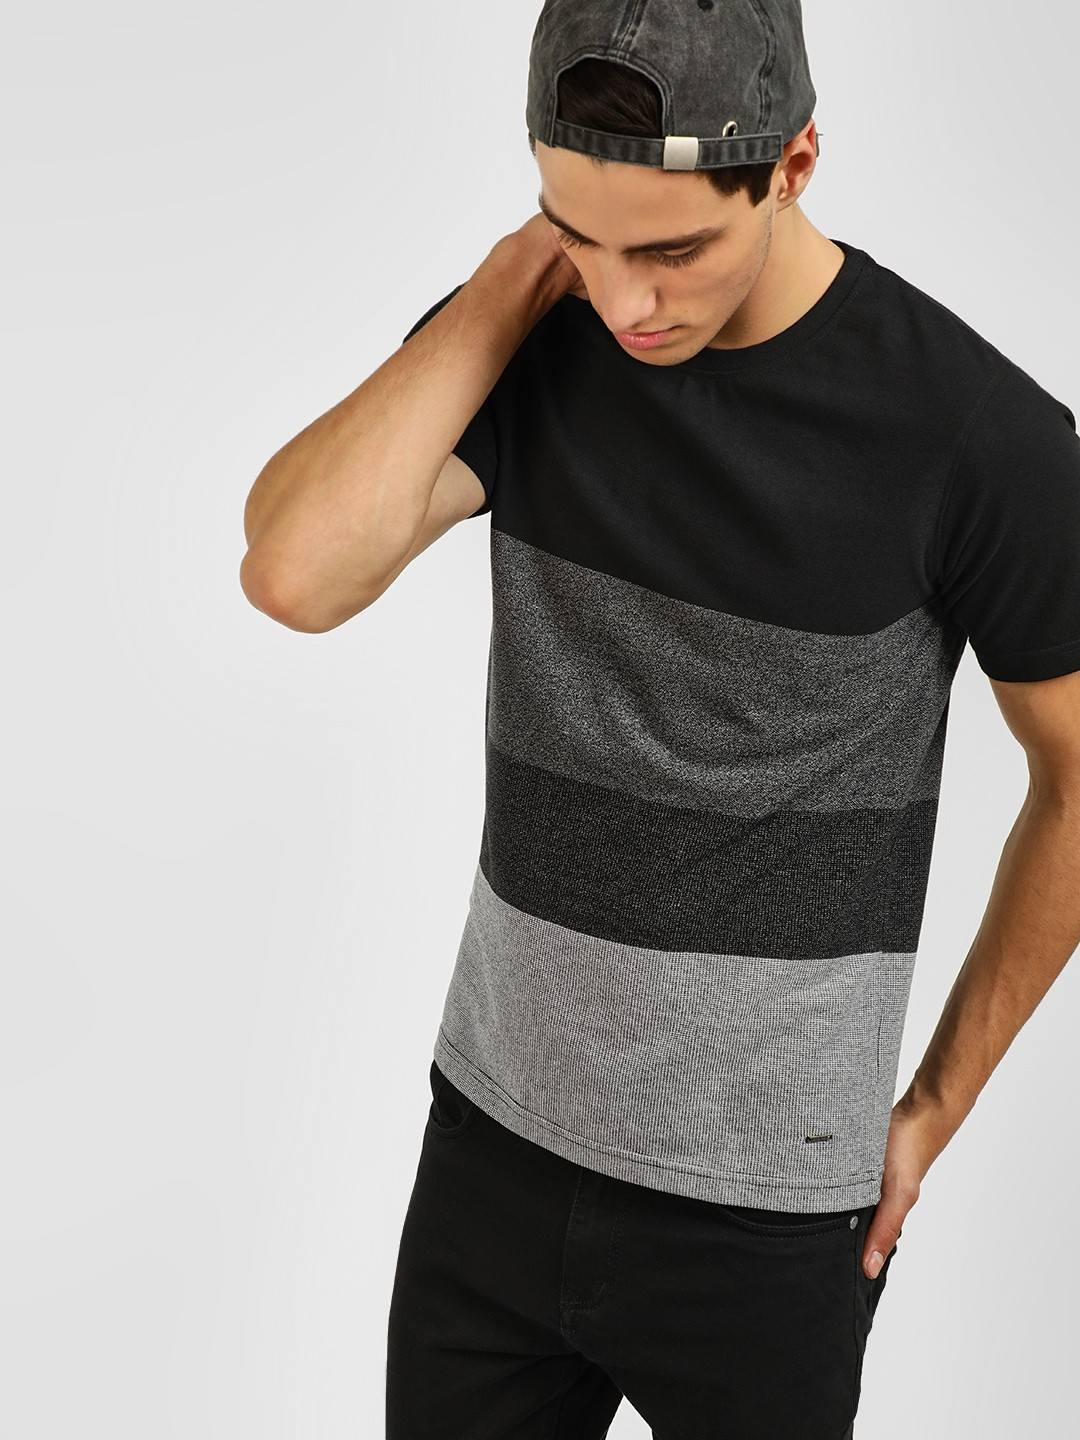 Lee Cooper Black Yarn Dyed Colour Block T-Shirt 1